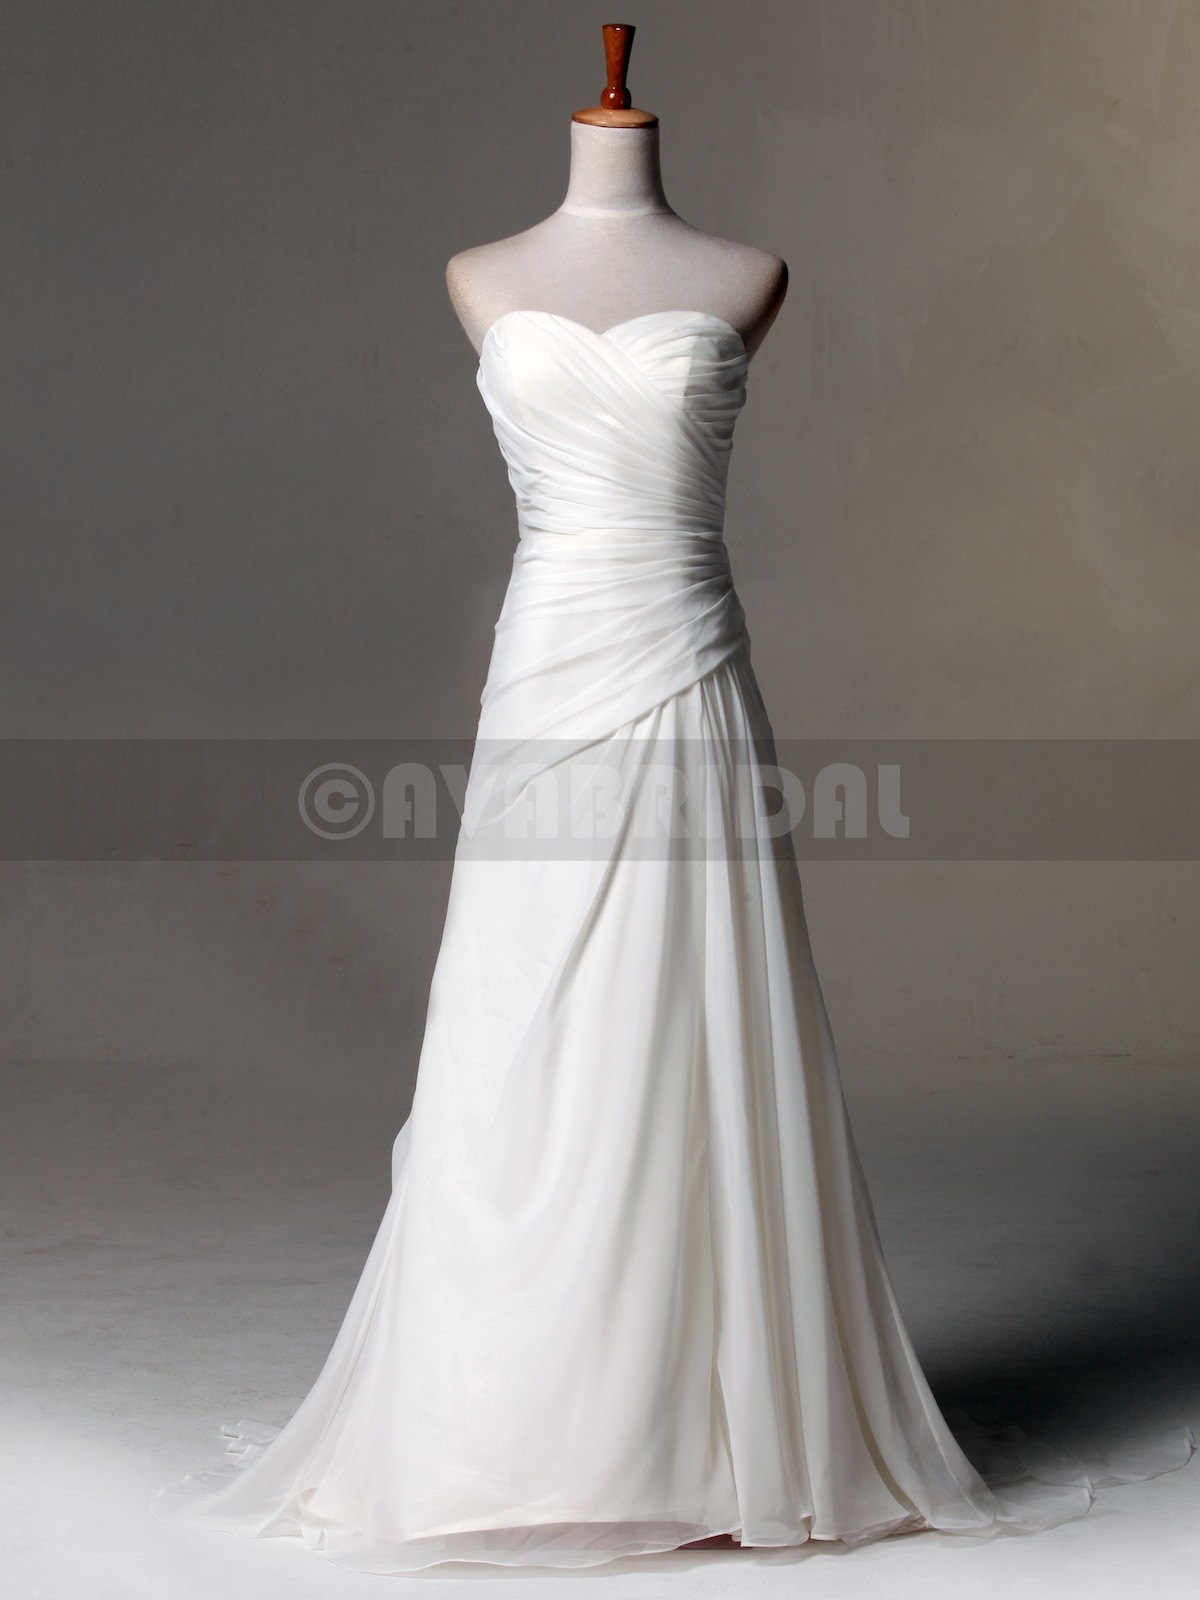 Slim Line Beach Casual Style Wedding Dress W819-front